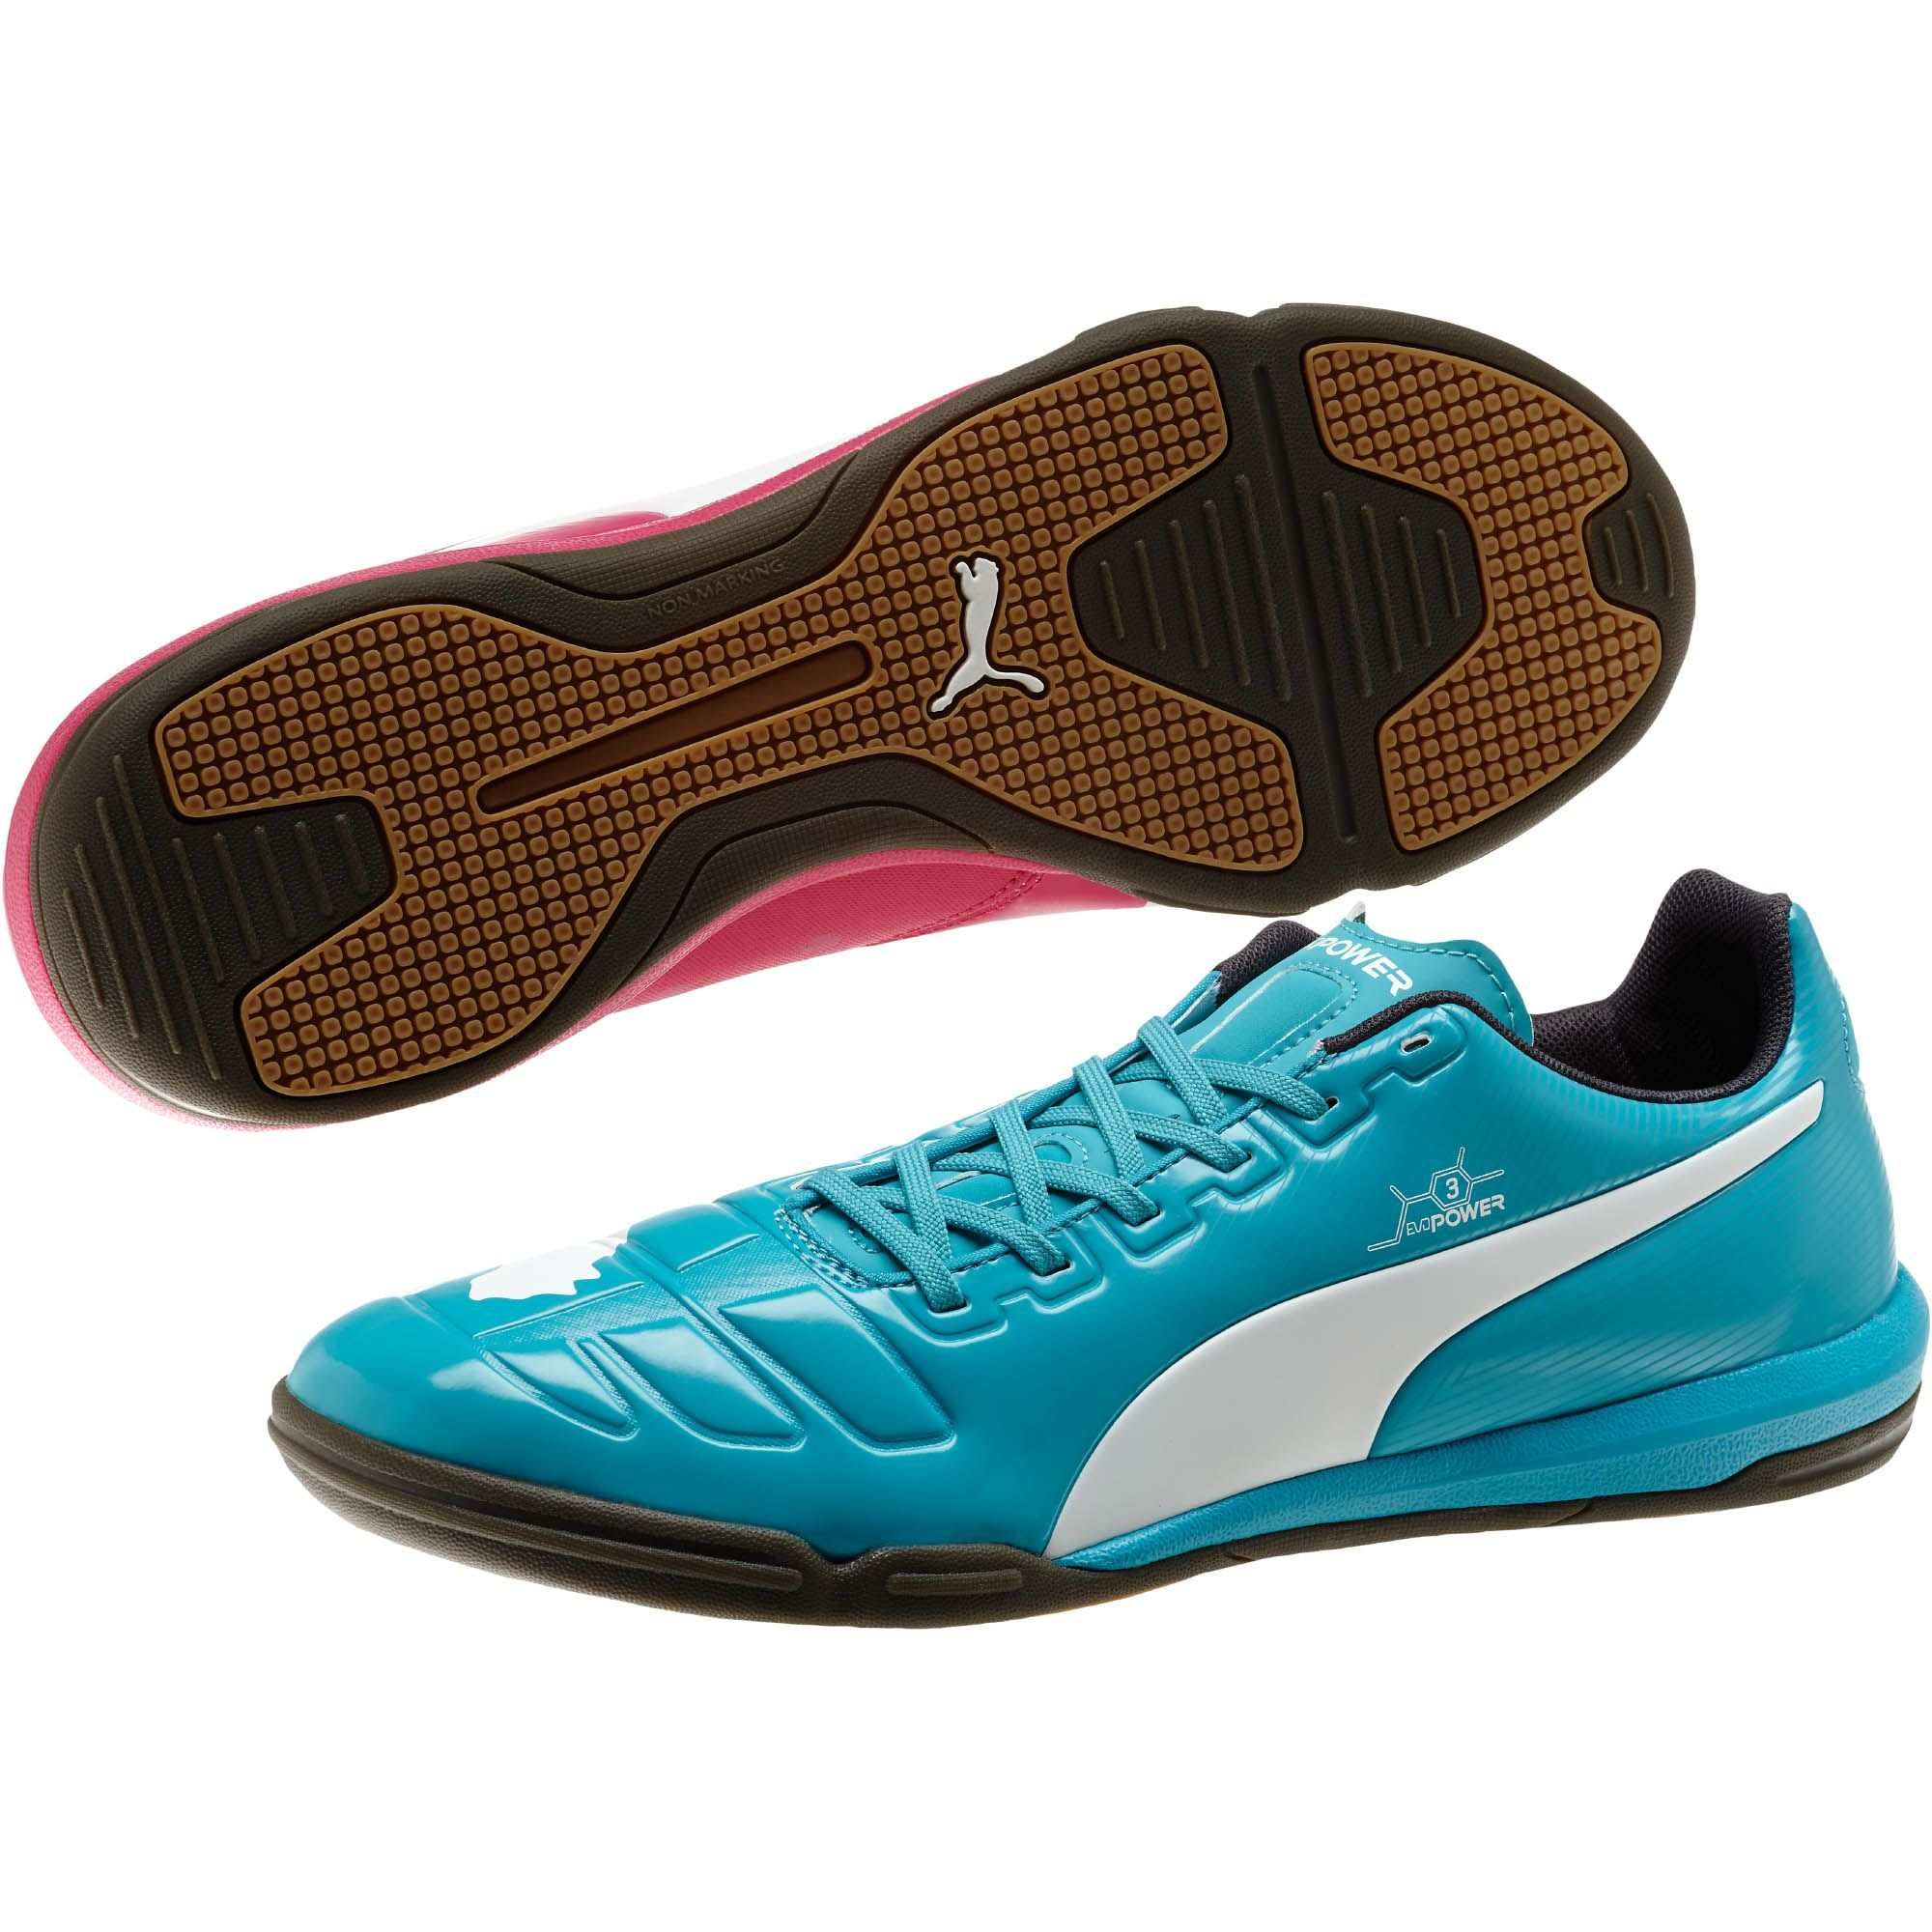 PUMA evoPOWER 3 Tricks IT Men's Indoor Soccer Shoes | - from the ...